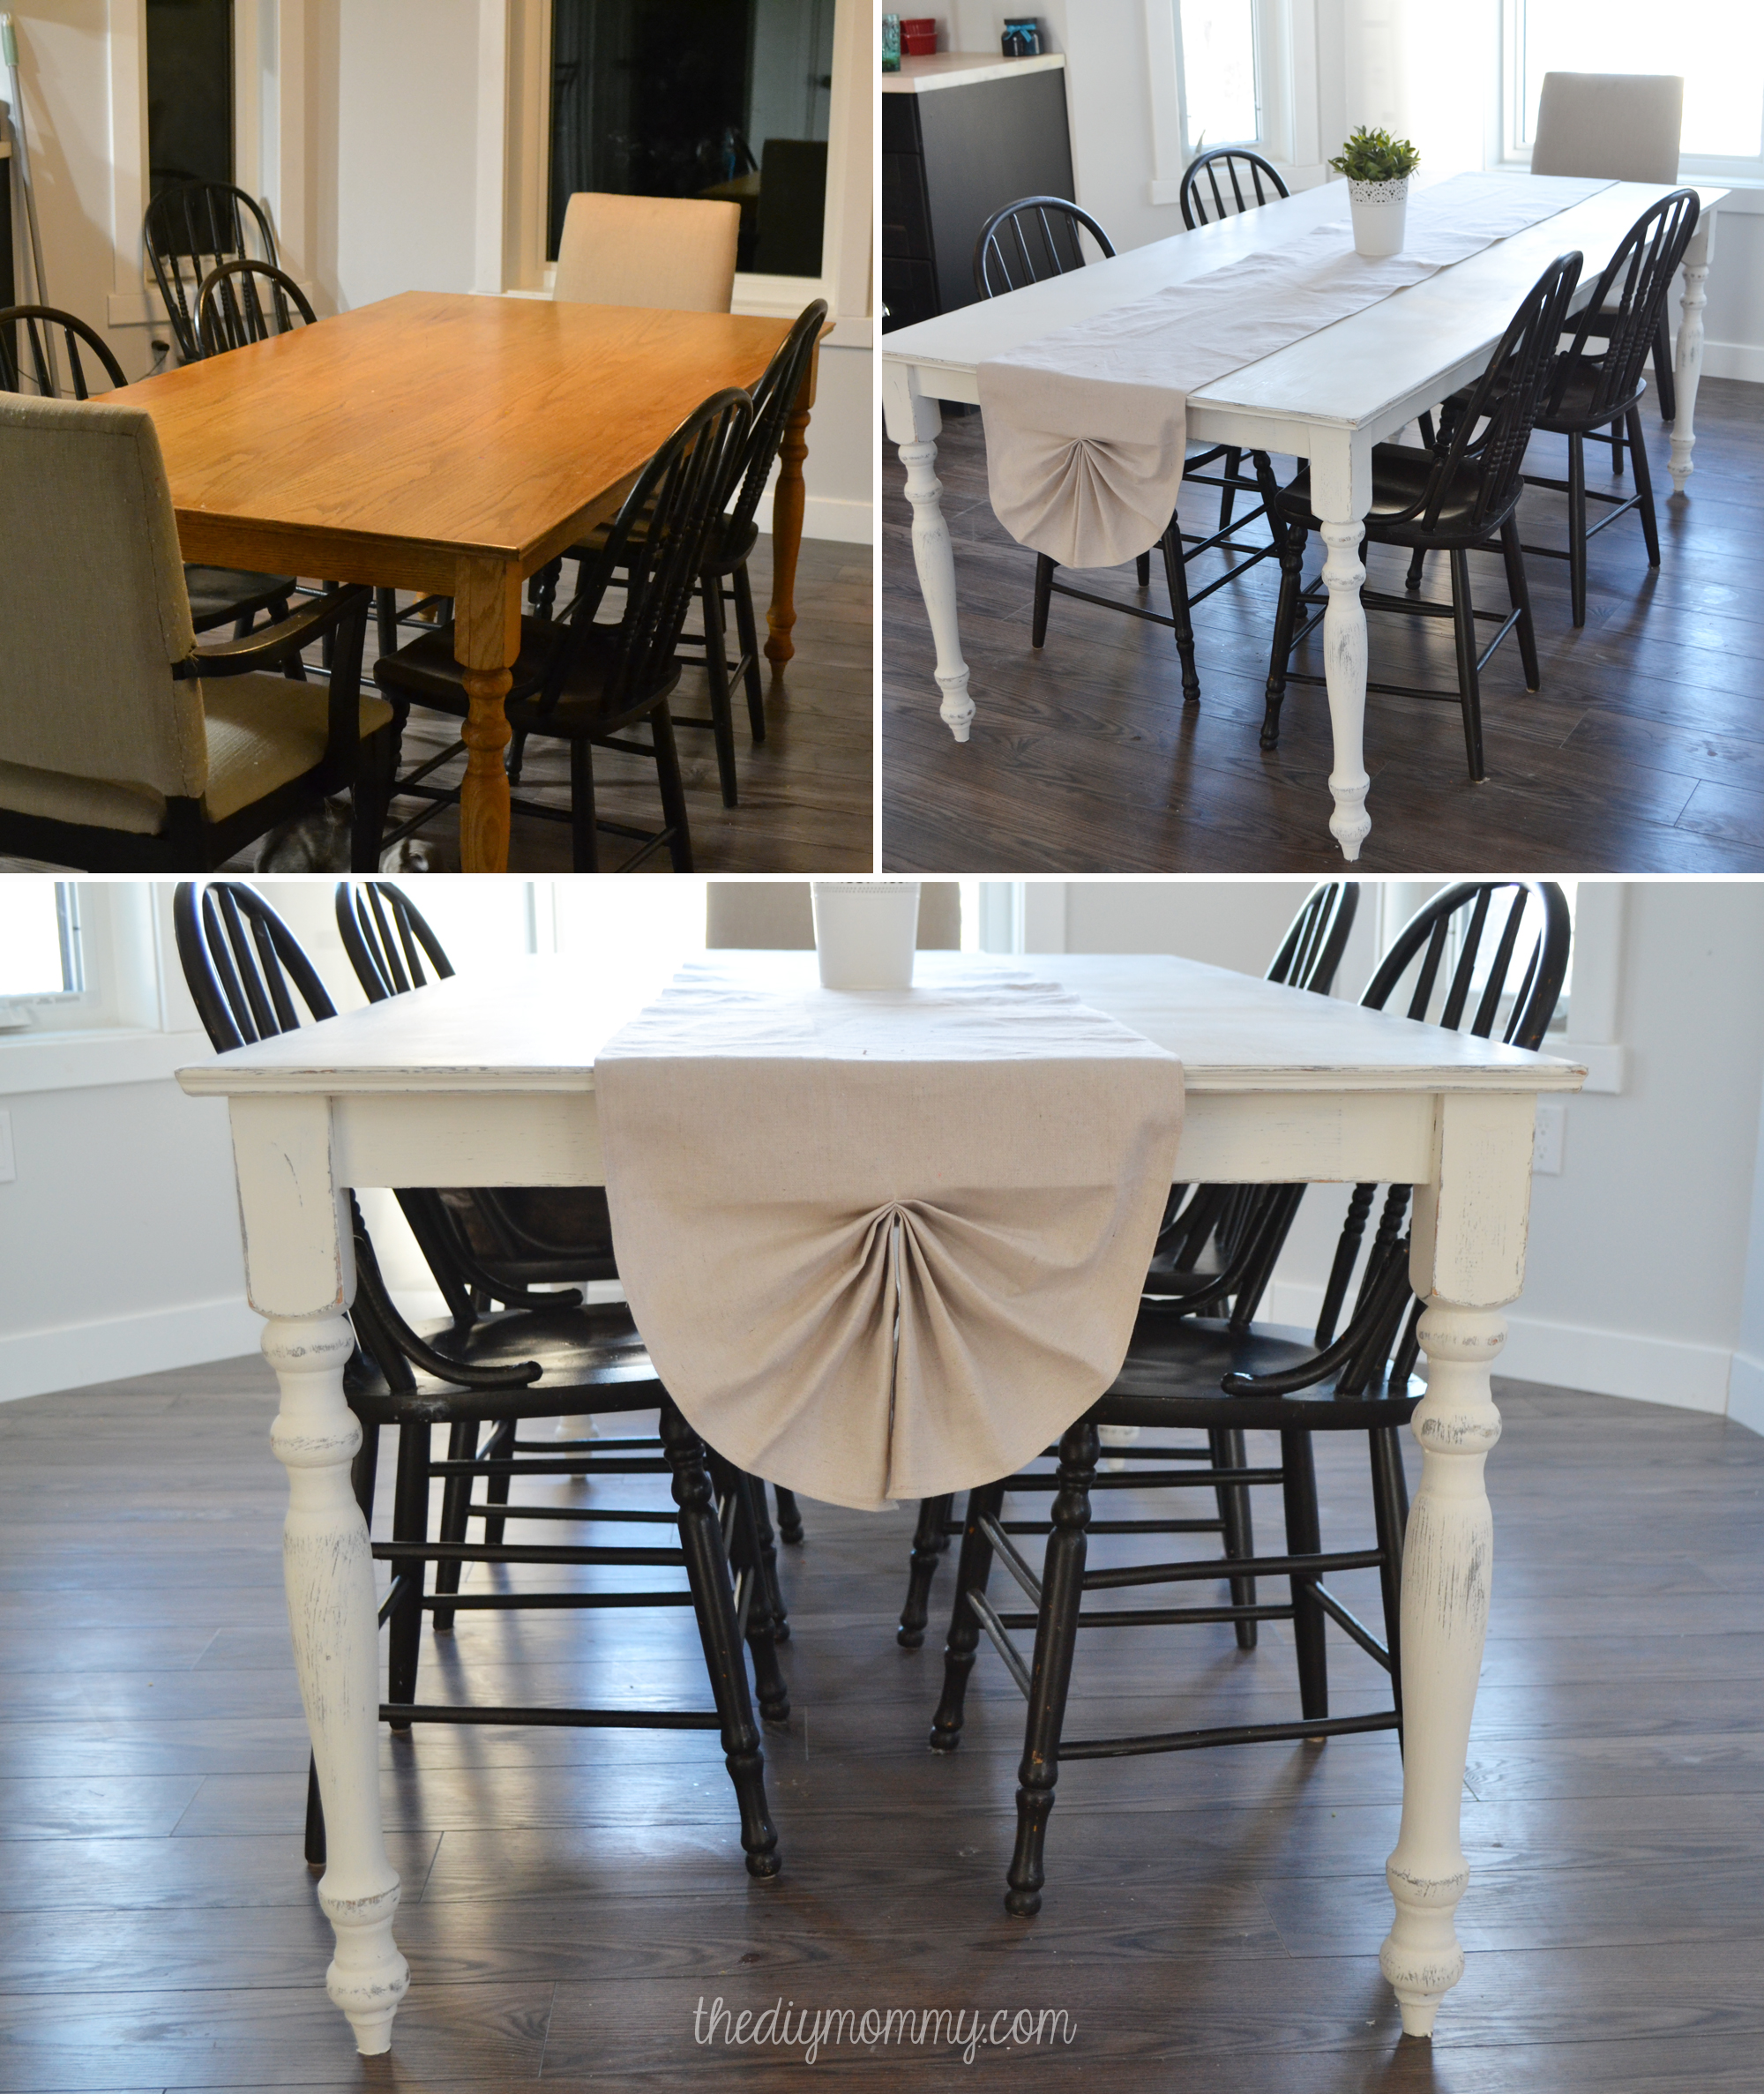 Diy Shabby Chic Dining Table And Chairs A Shabby Chic Farmhouse Table With Diy Chalk Paint The